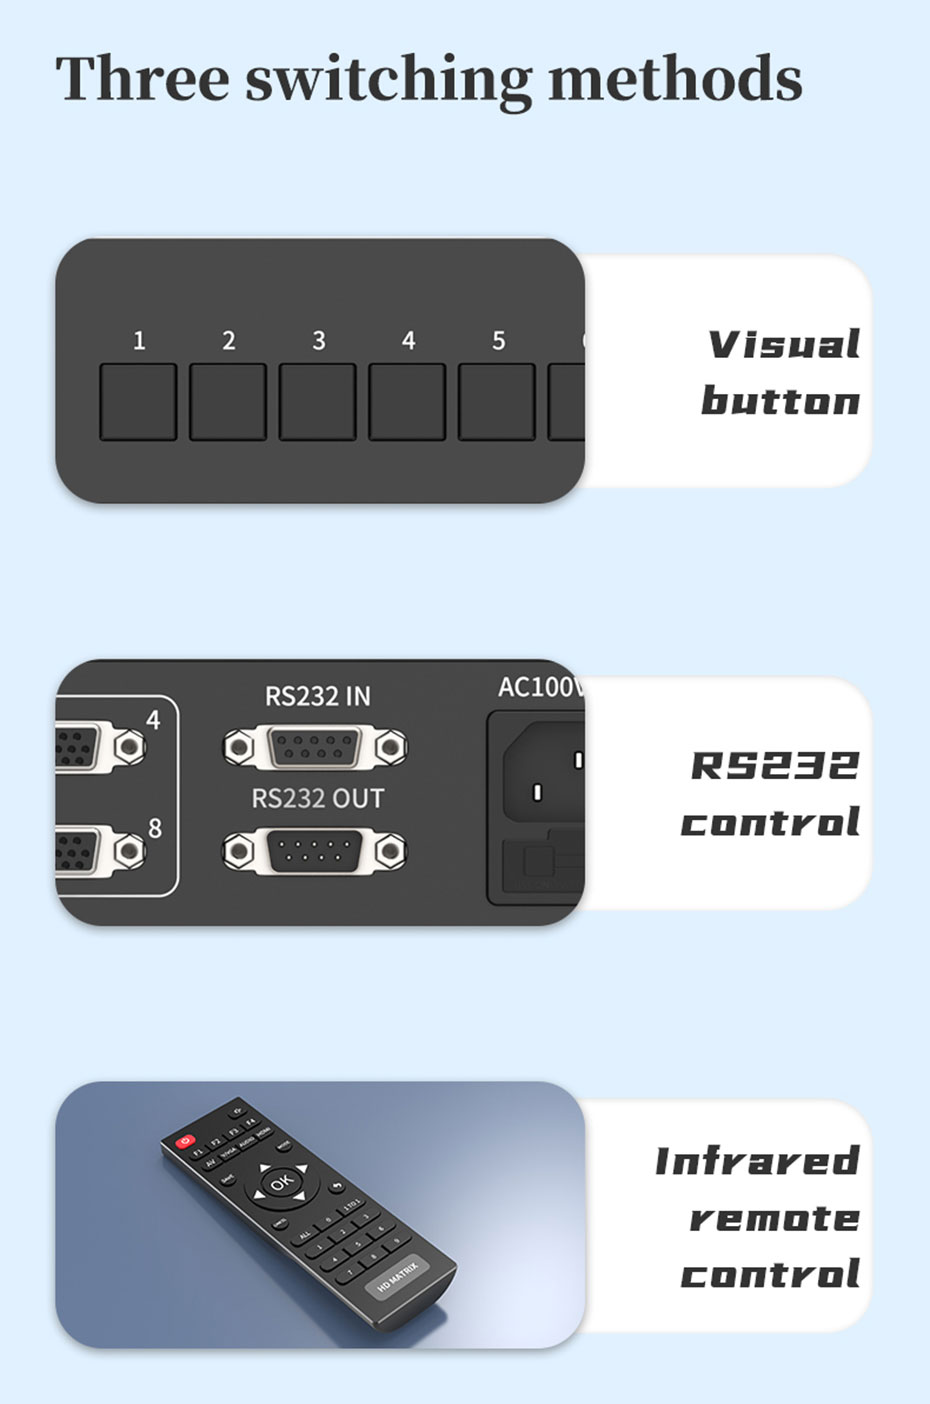 VGA matrix switcher 8x8 V818 with RS232 supports three switching methods: visual button switching, RS232 control switching, infrared remote control switching